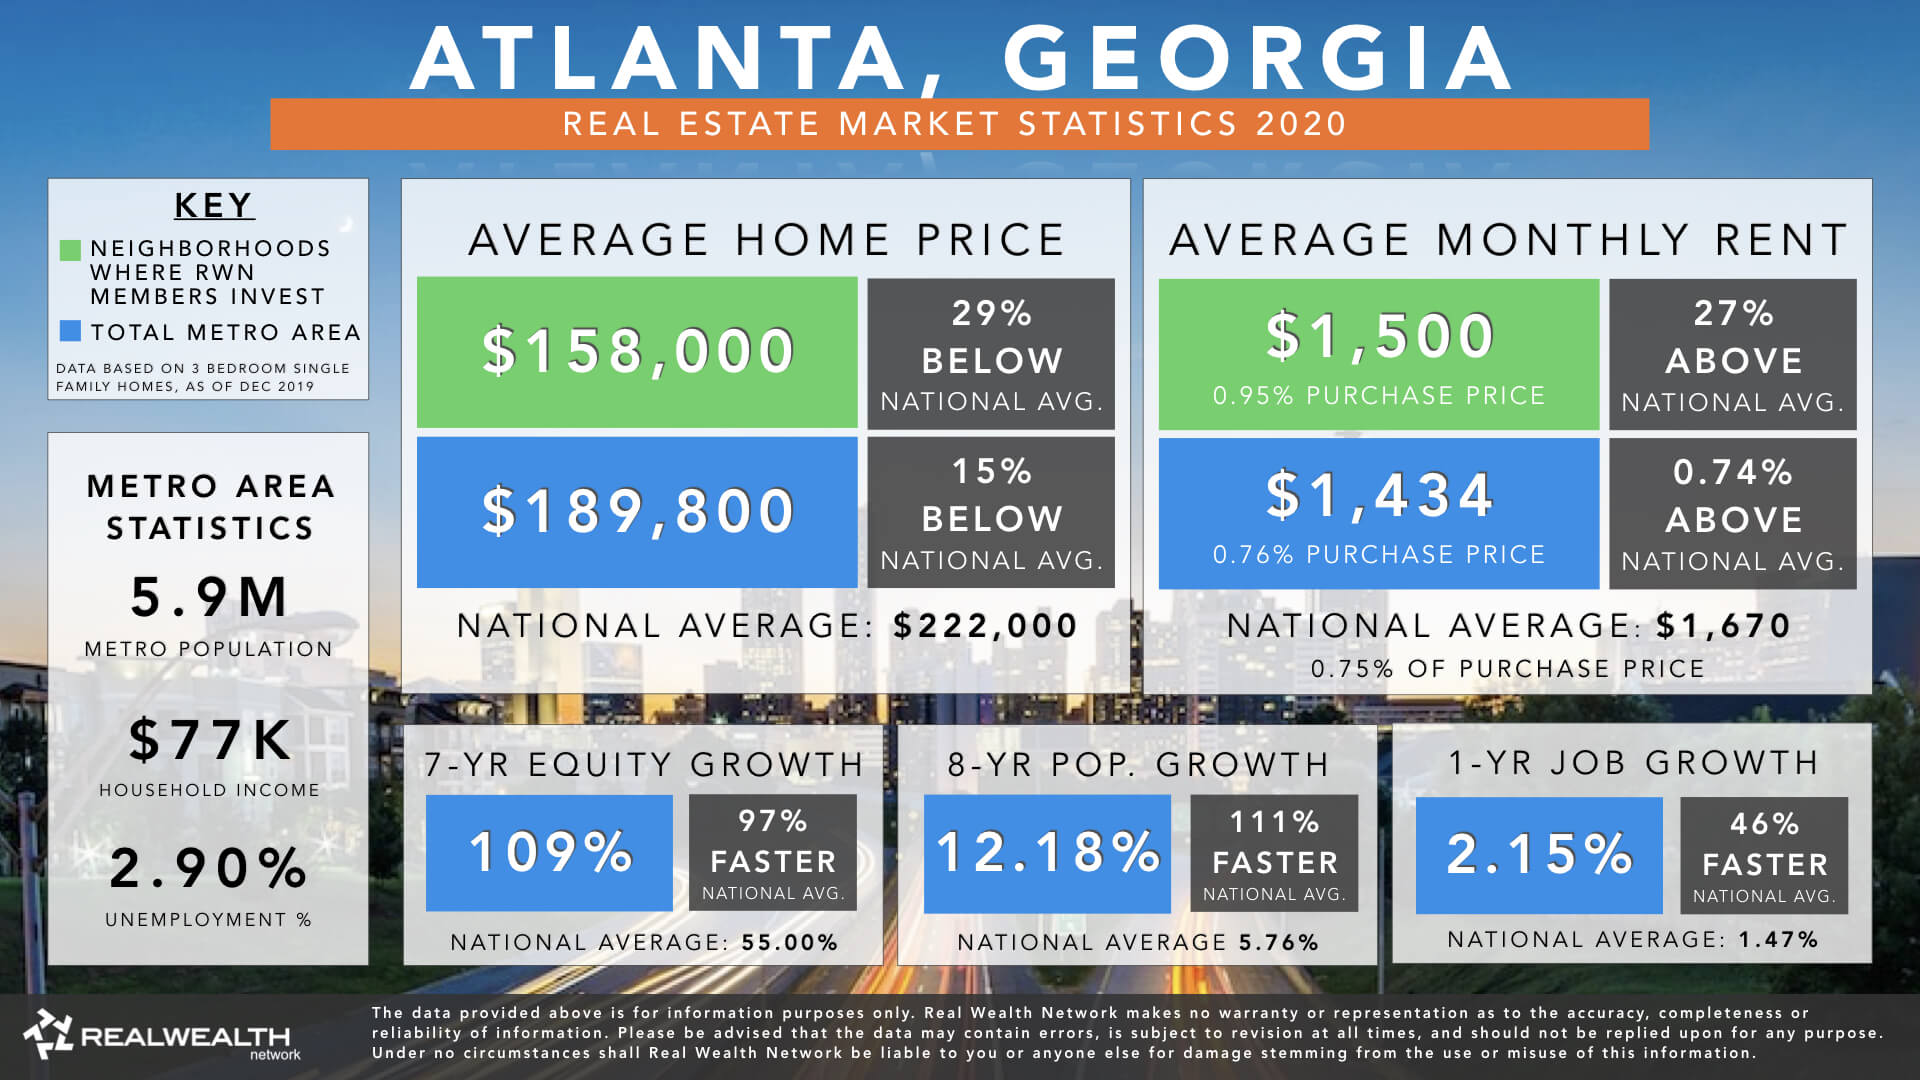 Atlanta Real Estate Market Trends & Statistics 2020